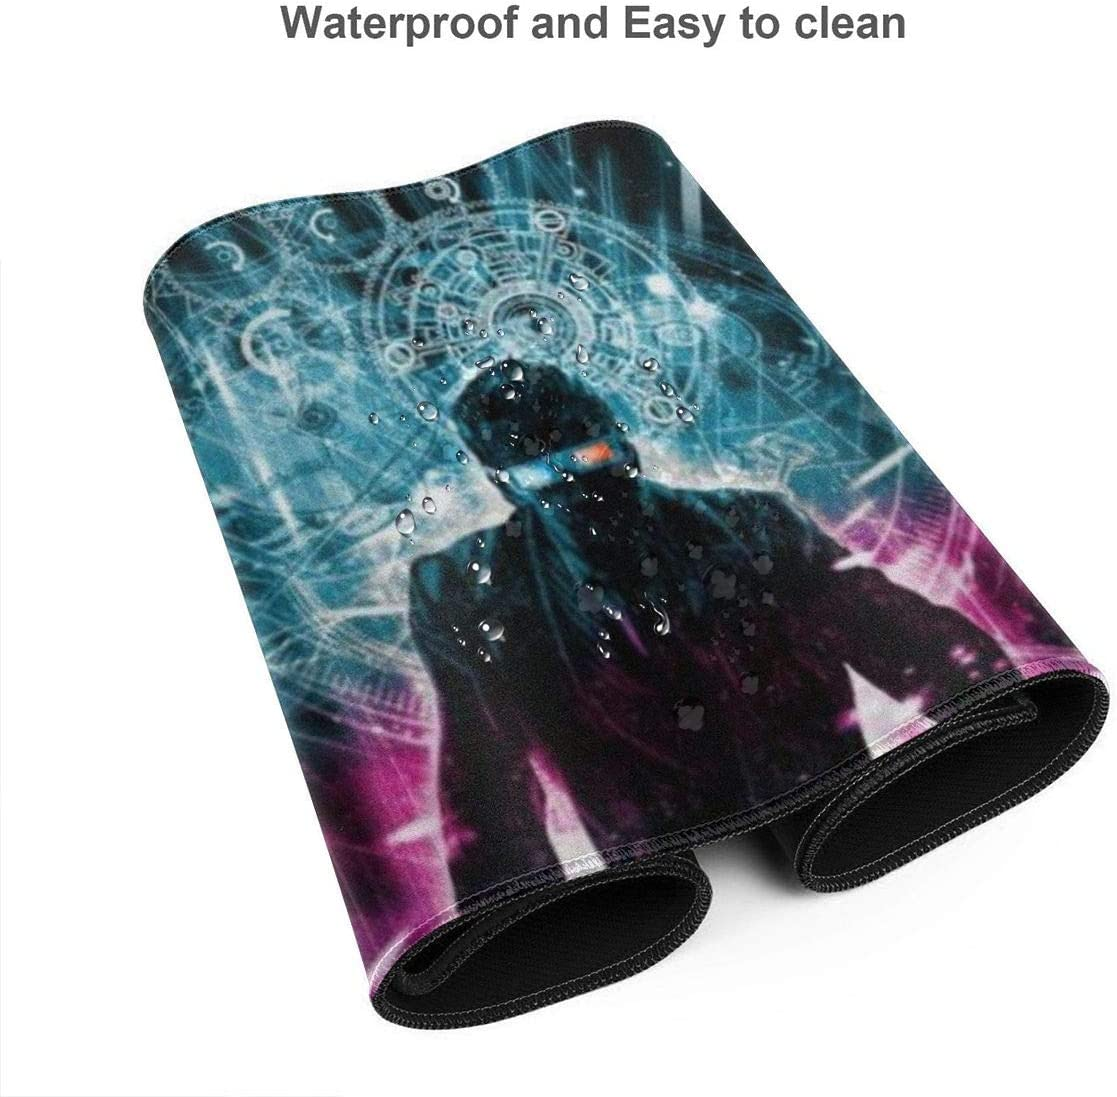 31.5 X 11.8x0.12 - XL Protective Keyboard Desk Mouse Mat for Computer//Laptop Extra Large Mouse Pad -10th Doctor Who Time Explosion Desk Mousepad 3mm Thick